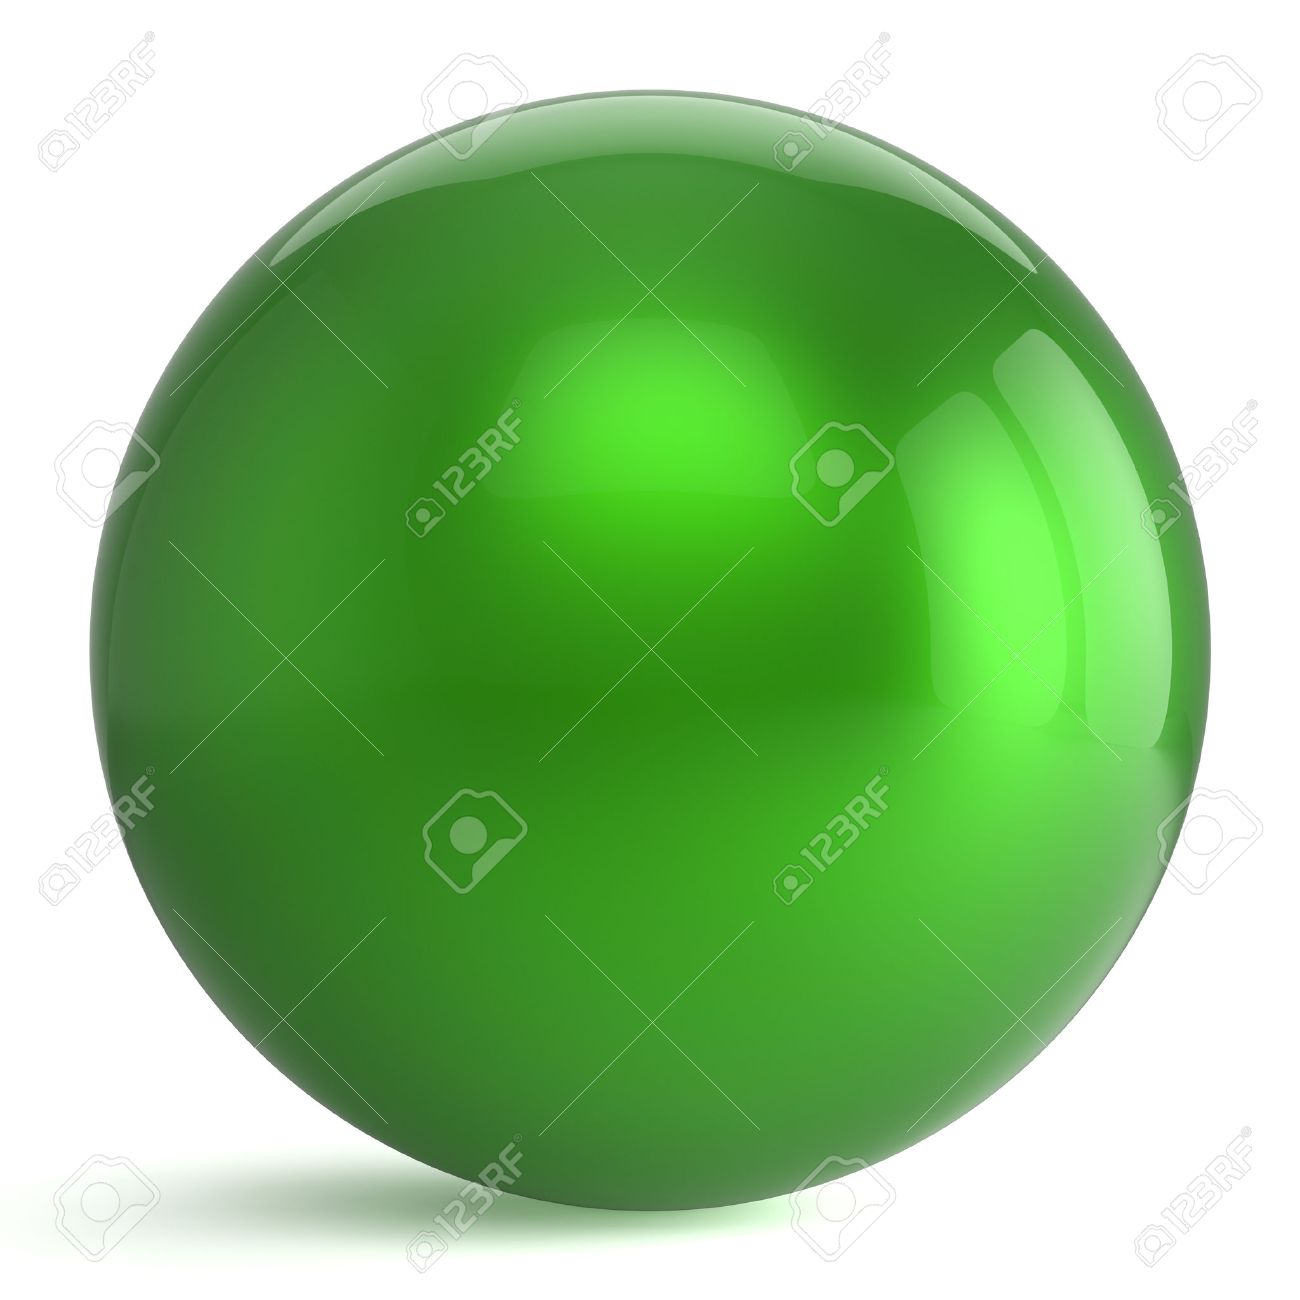 Sphere button round green ball geometric shape basic circle solid figure simple minimalistic atom element single drop shiny glossy sparkling object blank balloon icon. 3d render isolated - 53550254